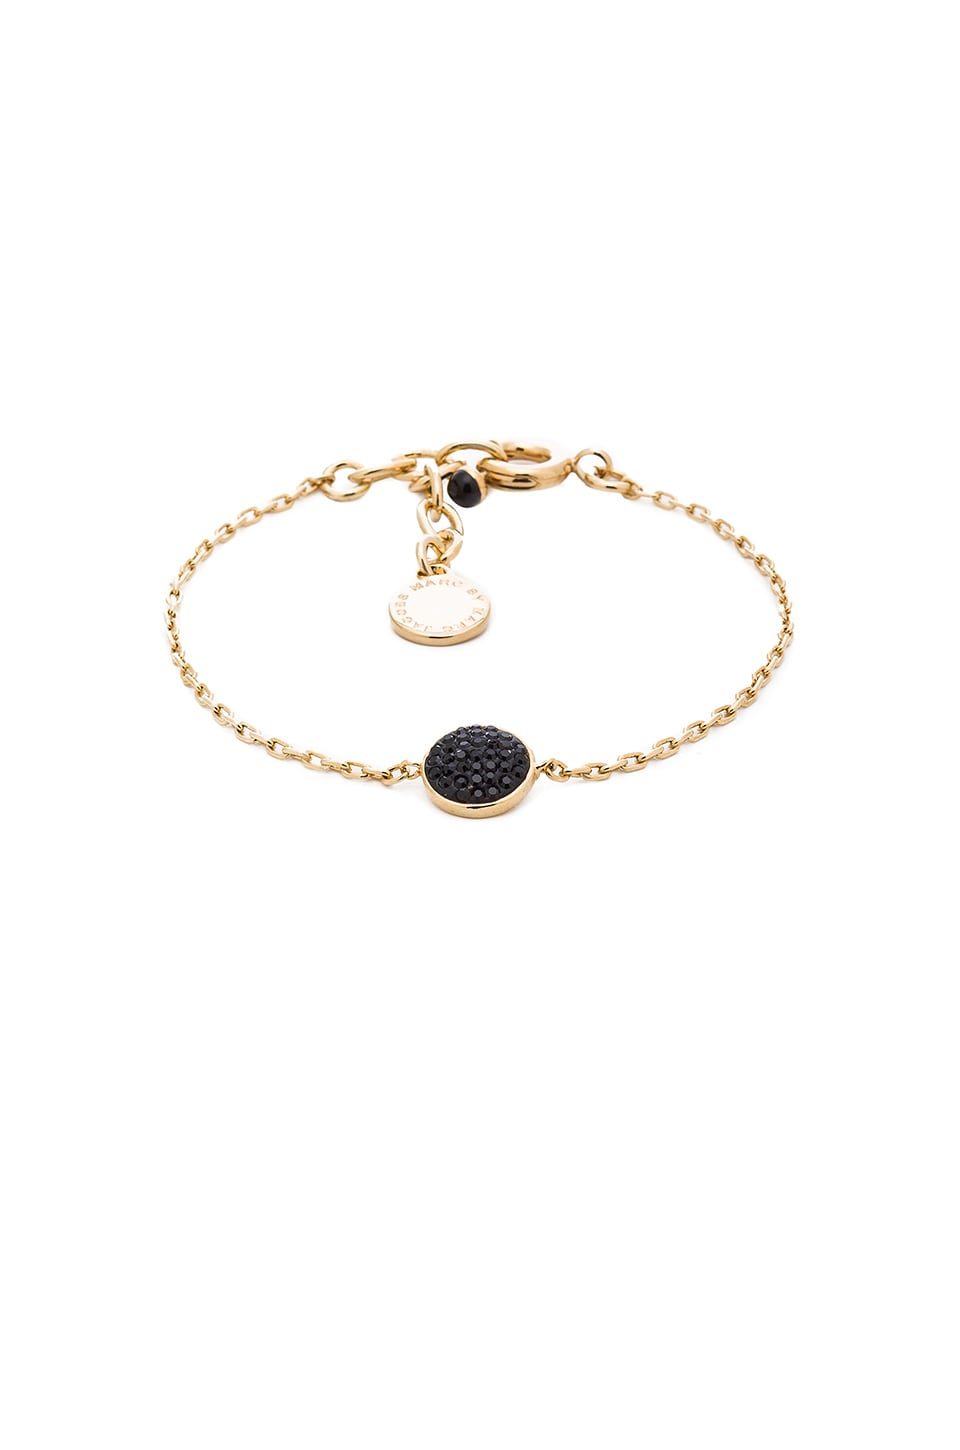 Marc by Marc Jacobs Pave Disc Bracelet in Black